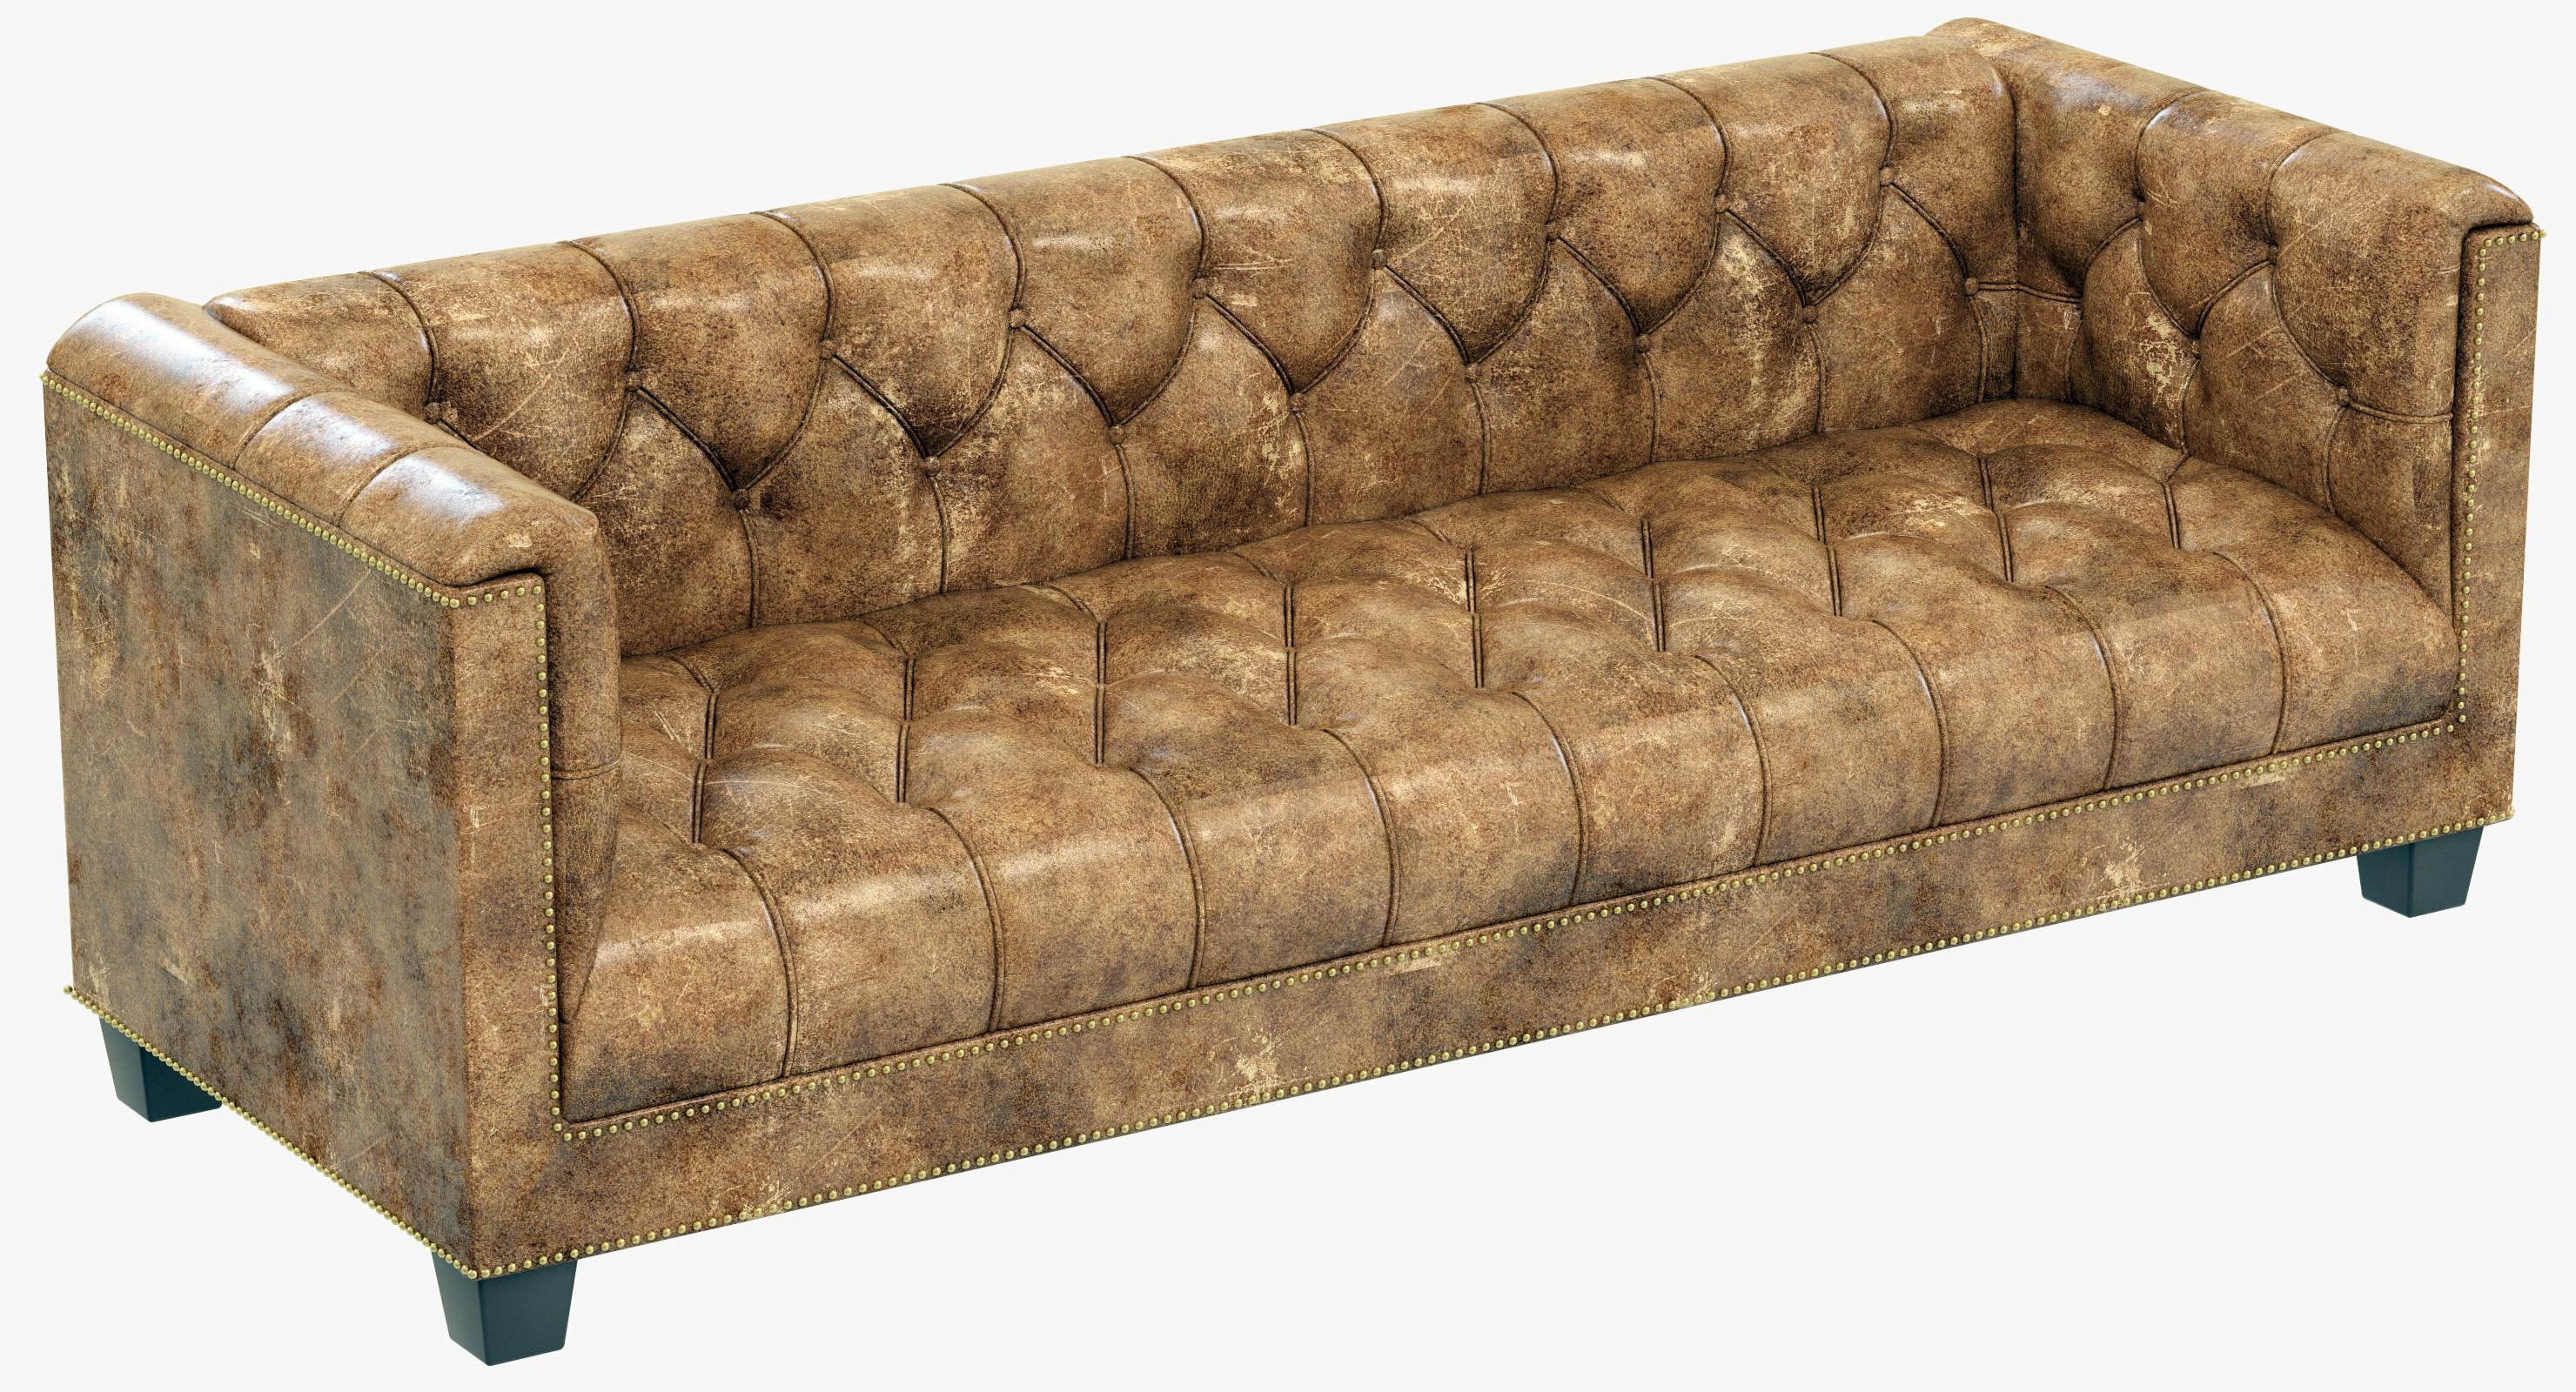 6 39 Savoy Sofa 3D Model Restoration Hardware Savoy Modern Sofa In Savoy Leather Sofas (Image 1 of 20)